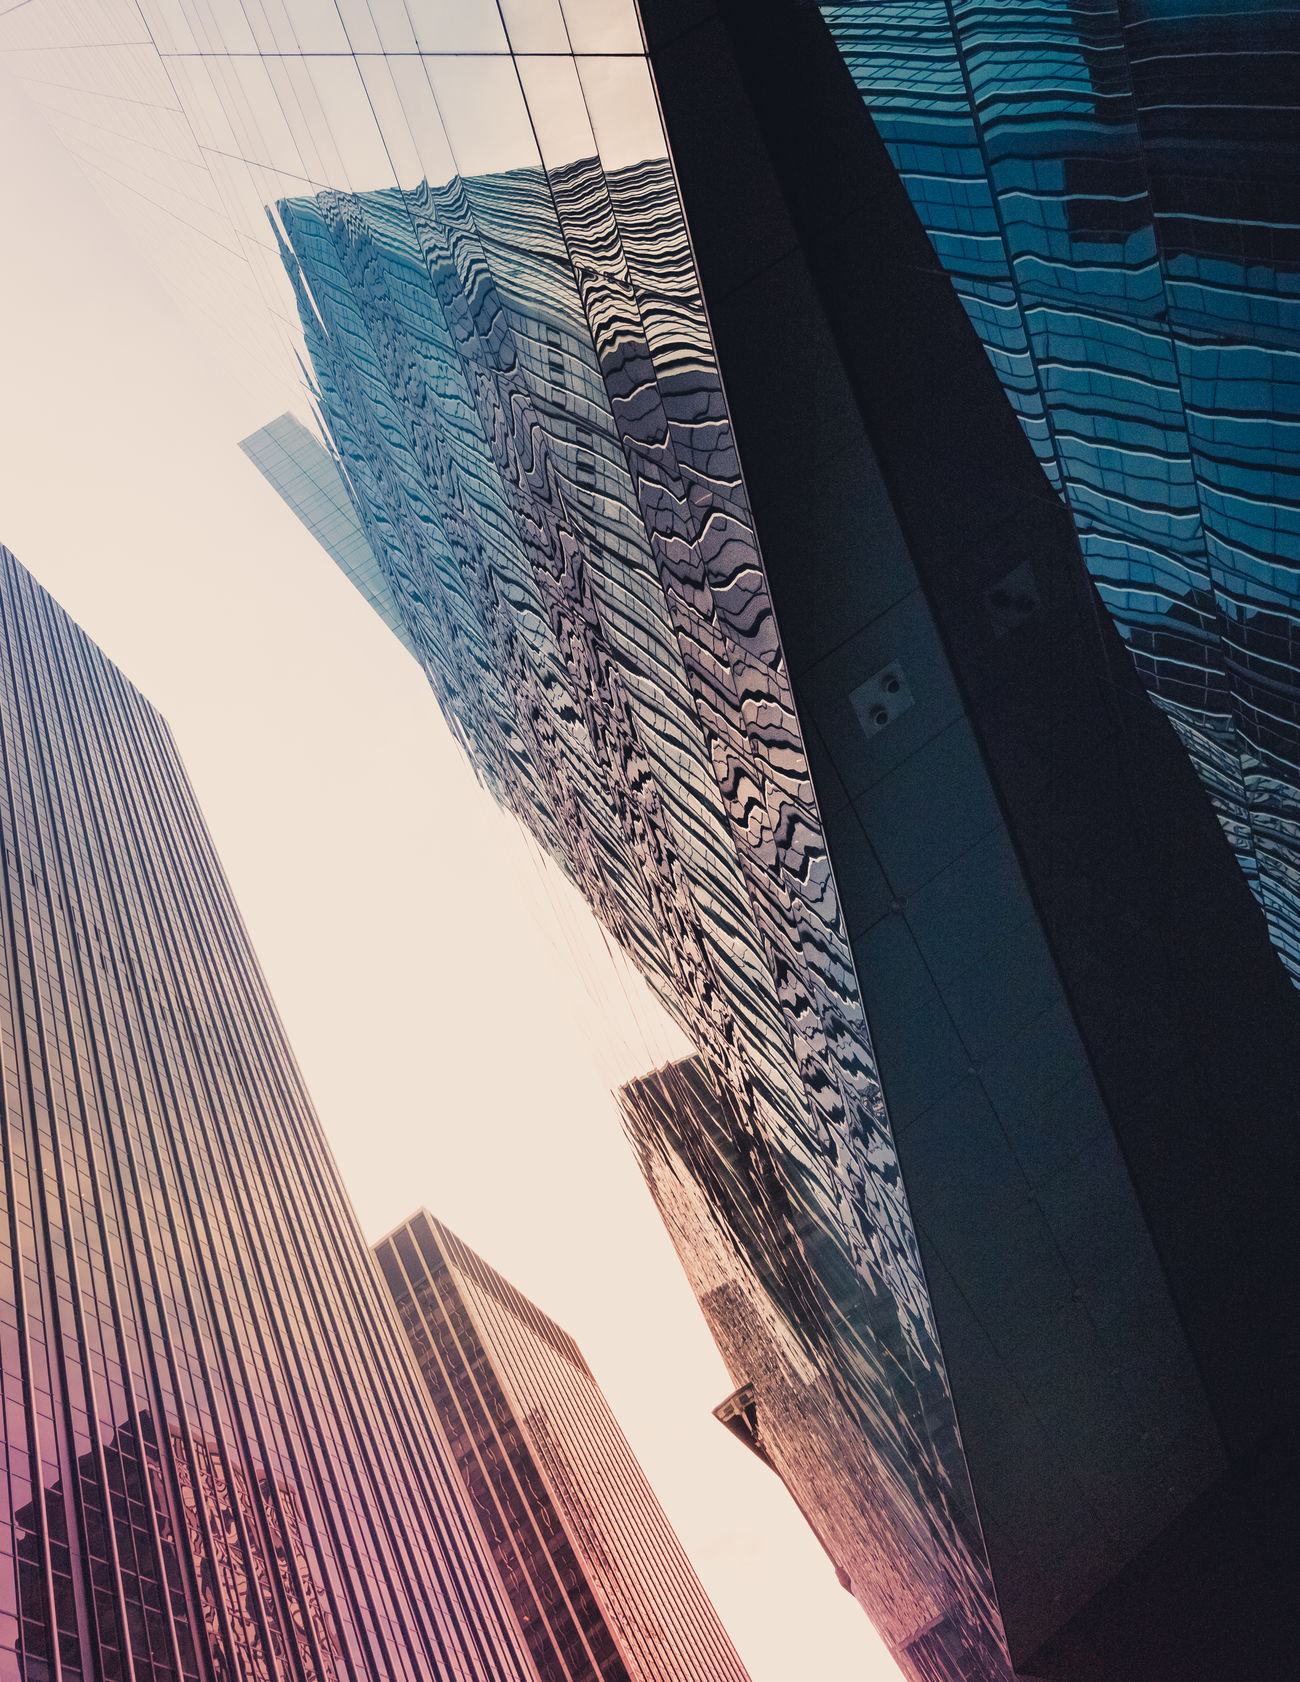 Fracture Architecture Building Exterior Built Structure City Day Low Angle View No People Outdoors Sky Skyscraper The Architect - 2017 EyeEm Awards Window